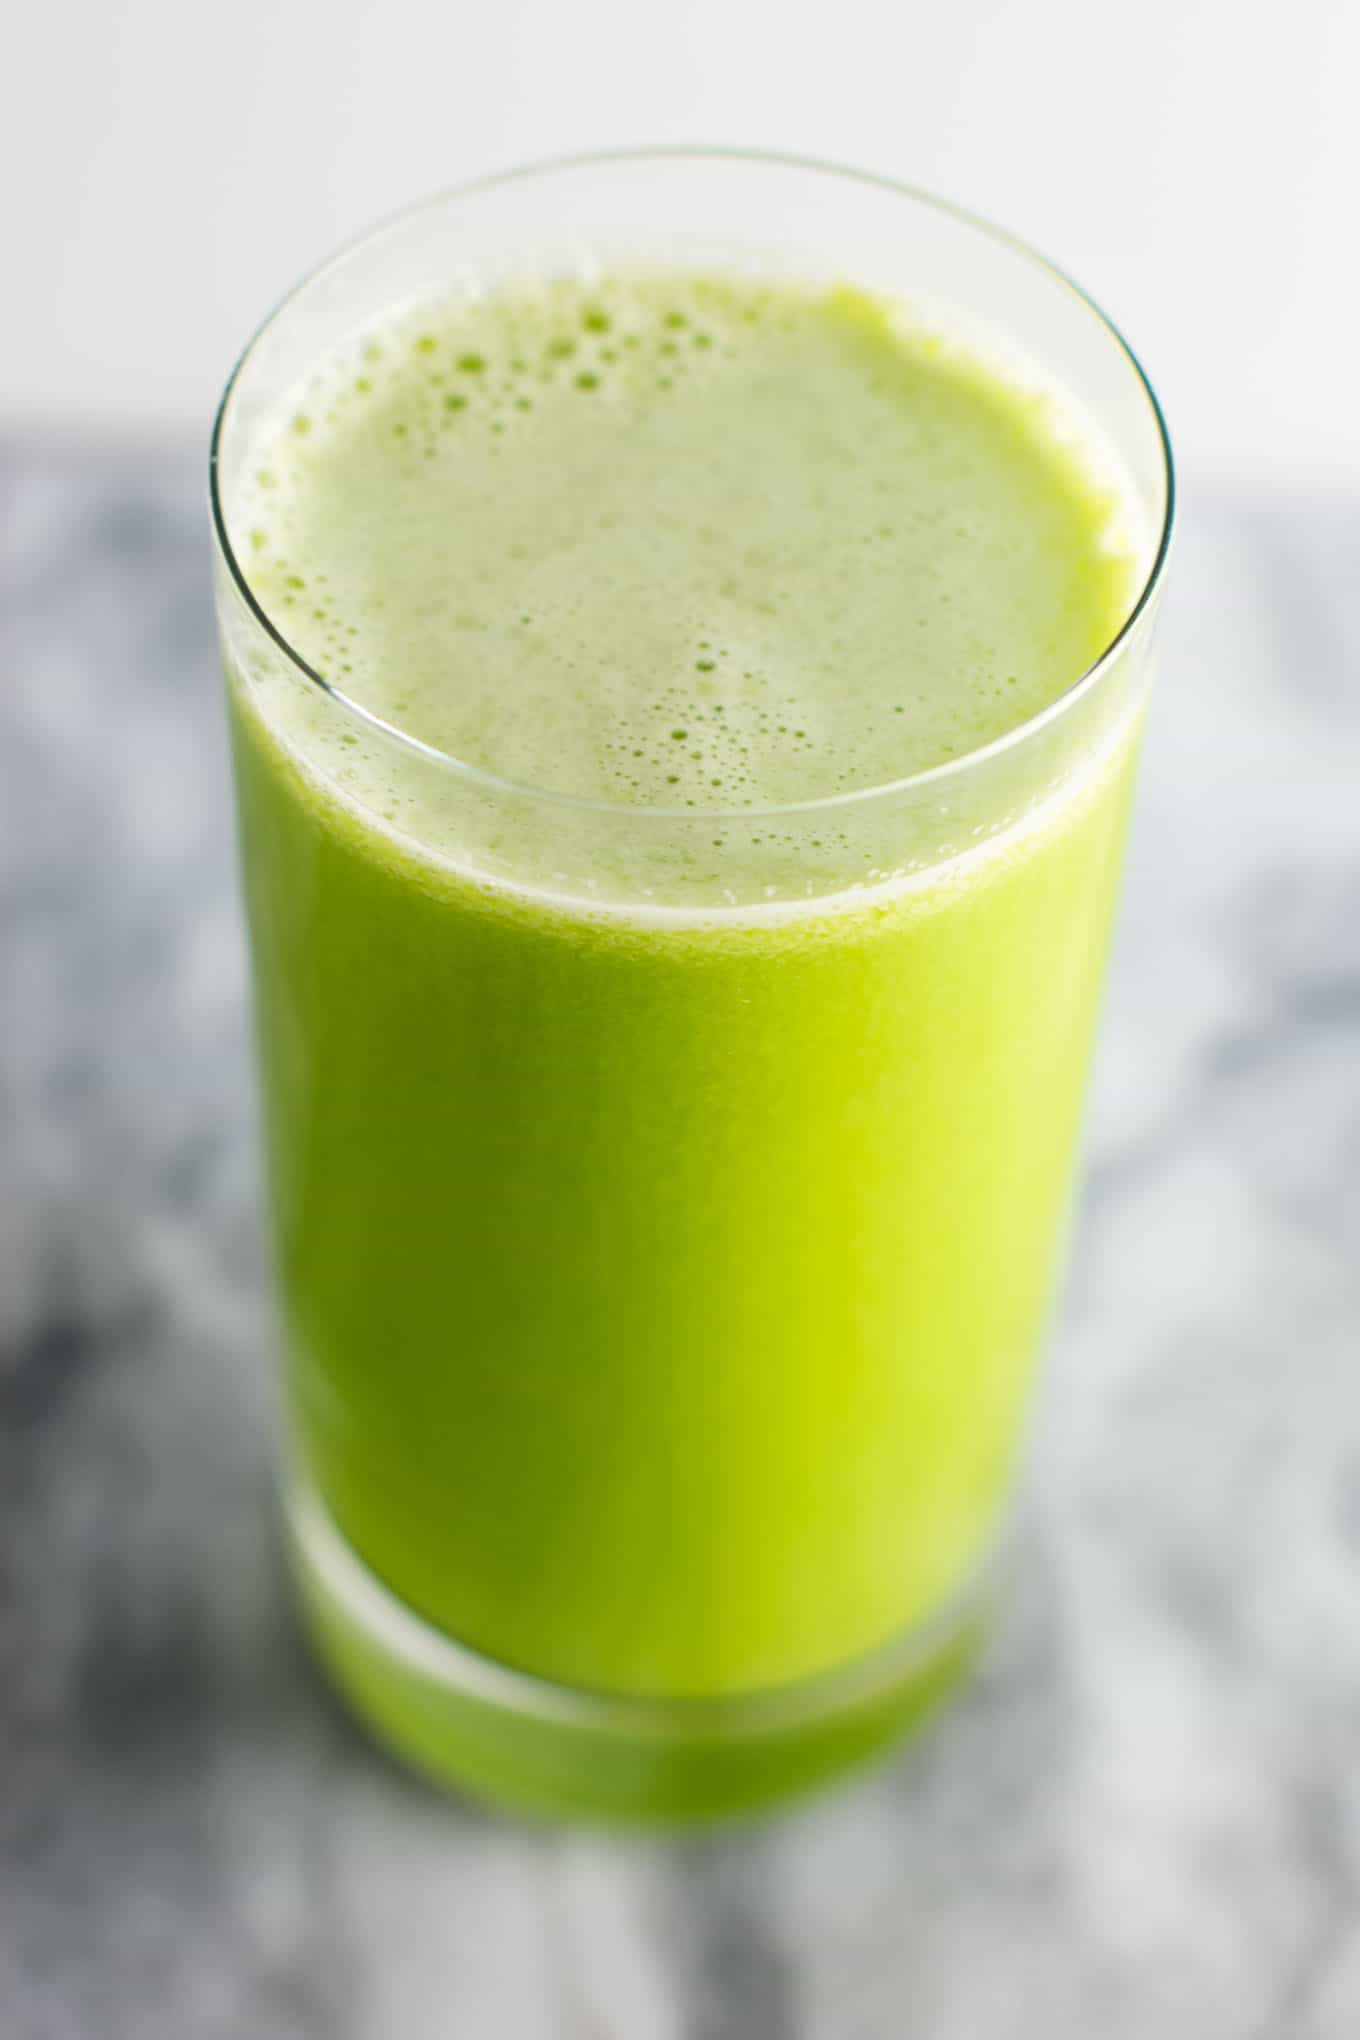 Easy cleansing green juice recipe made with cucumbers, lemons, celery, apples and romaine lettuce. #greenjuice #cleansinggreenjuice #juicing #vegan